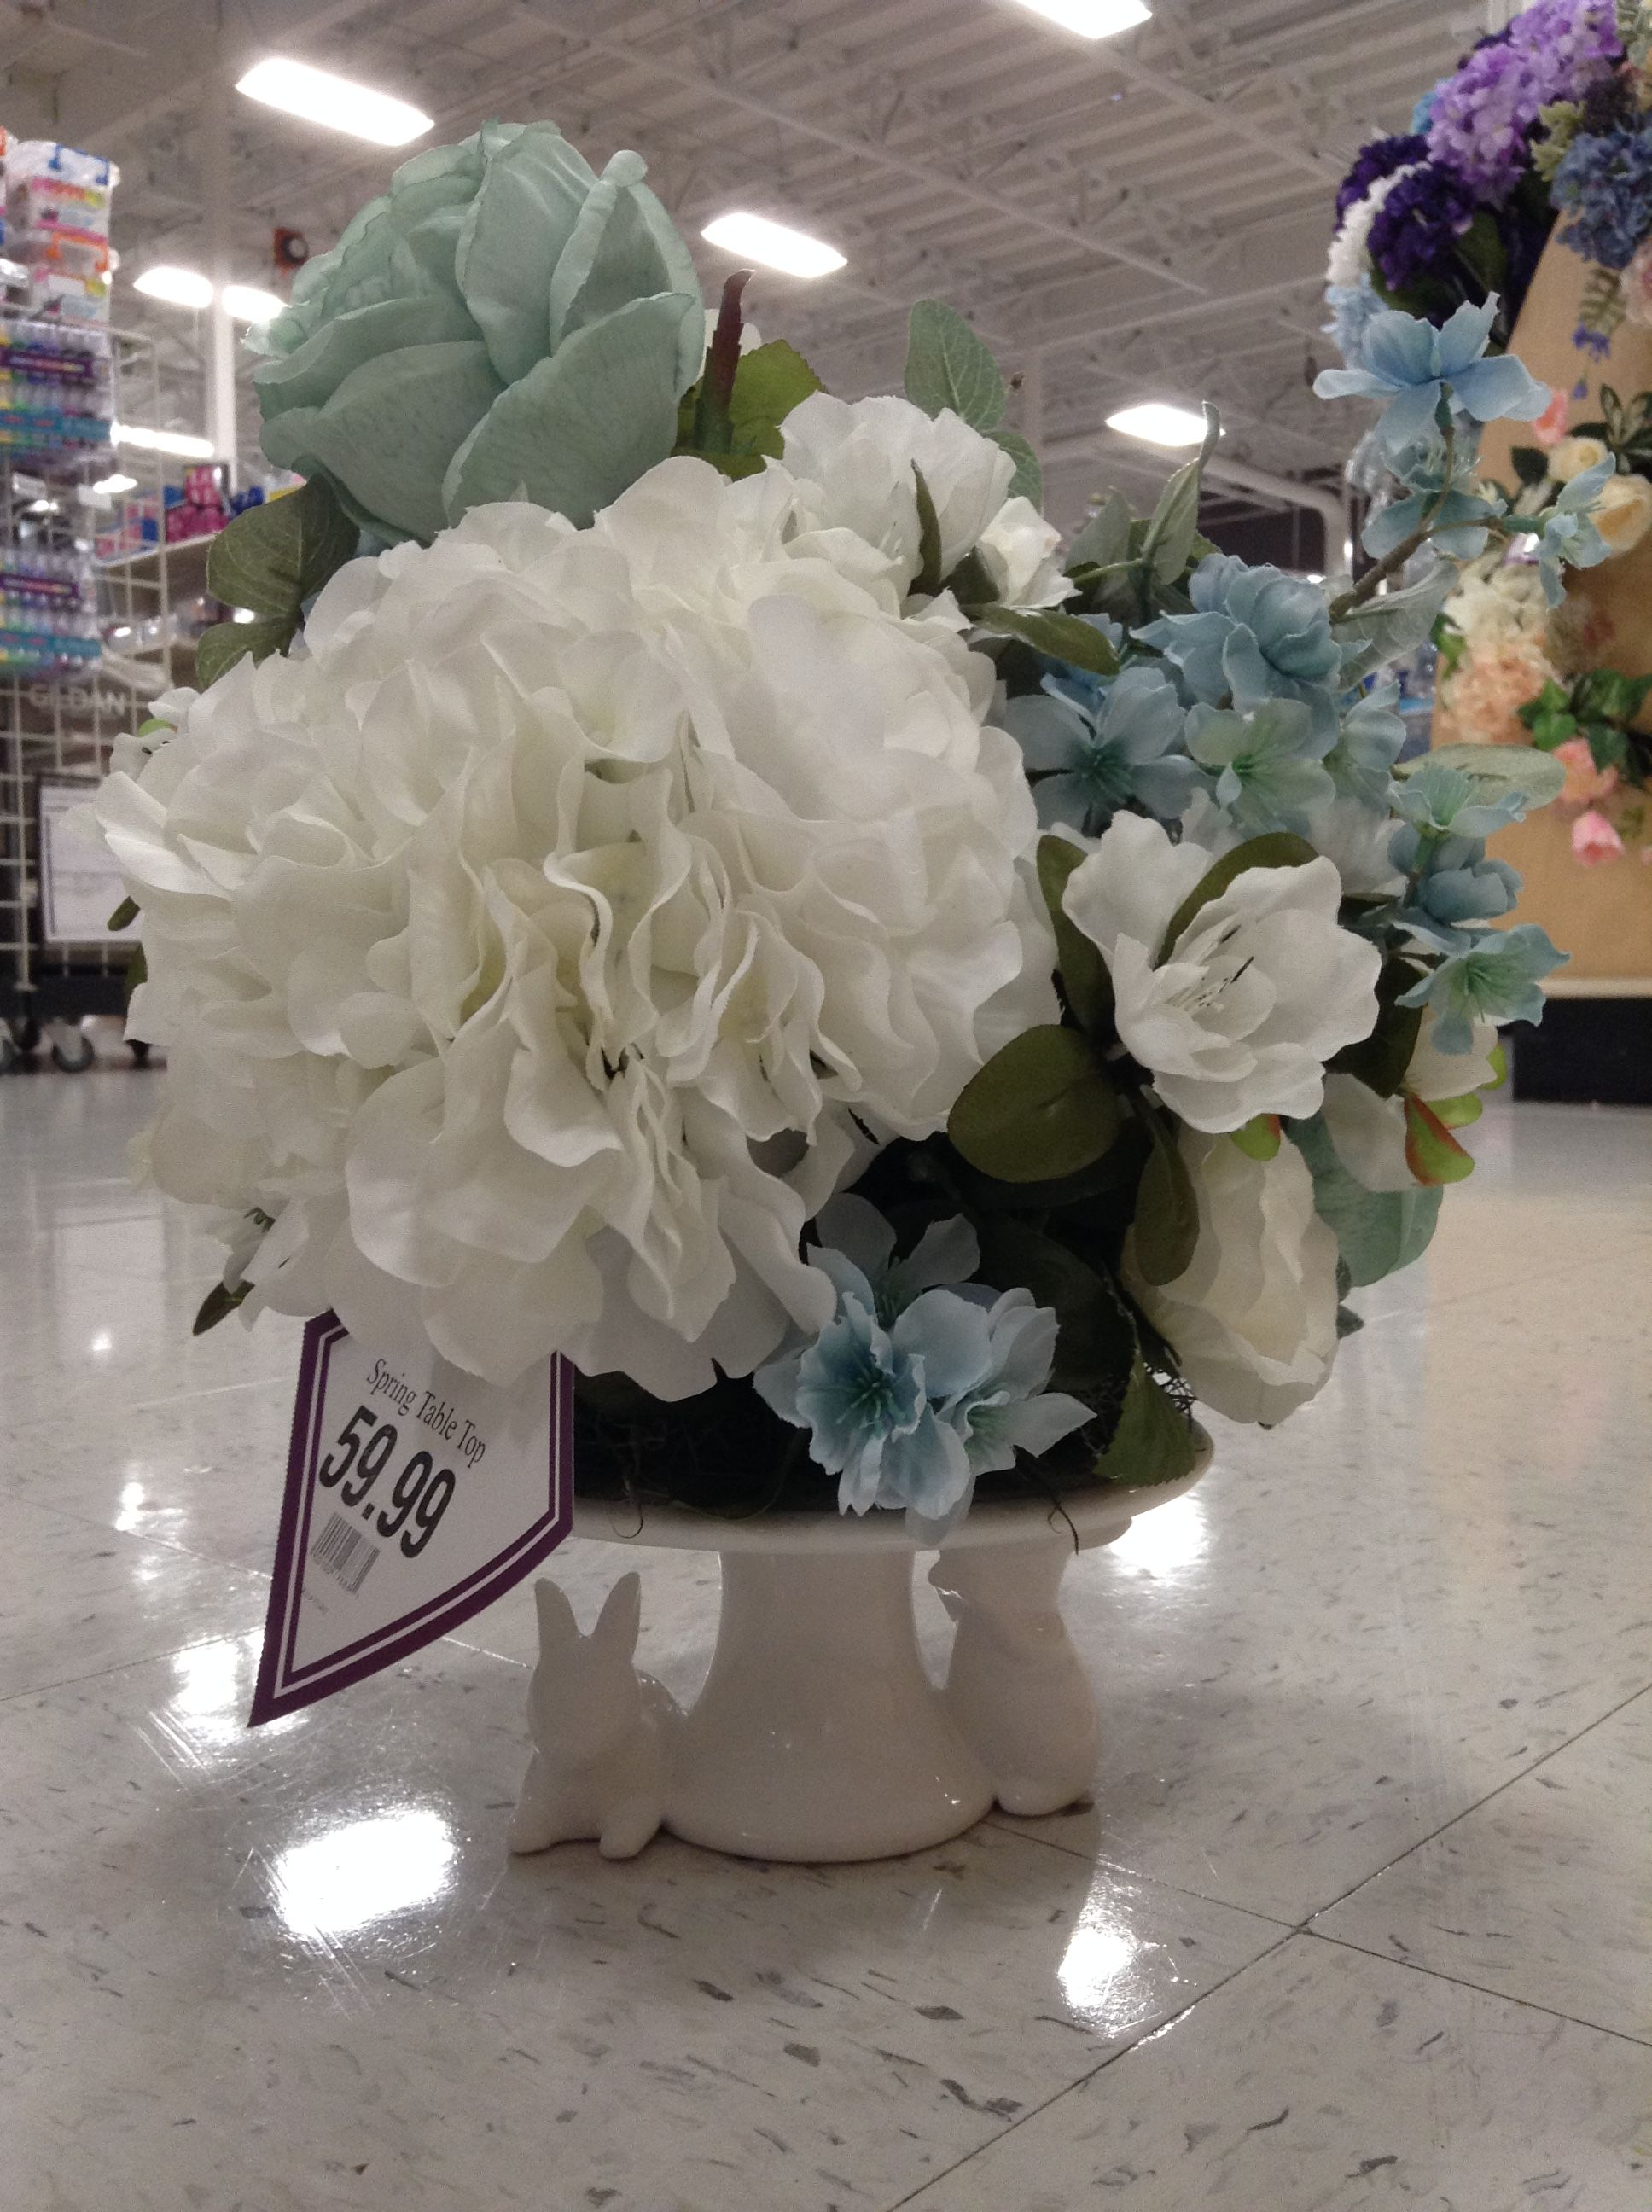 Floral Arrangement Of Dusty Blue Flowers And White Hydrangeas On